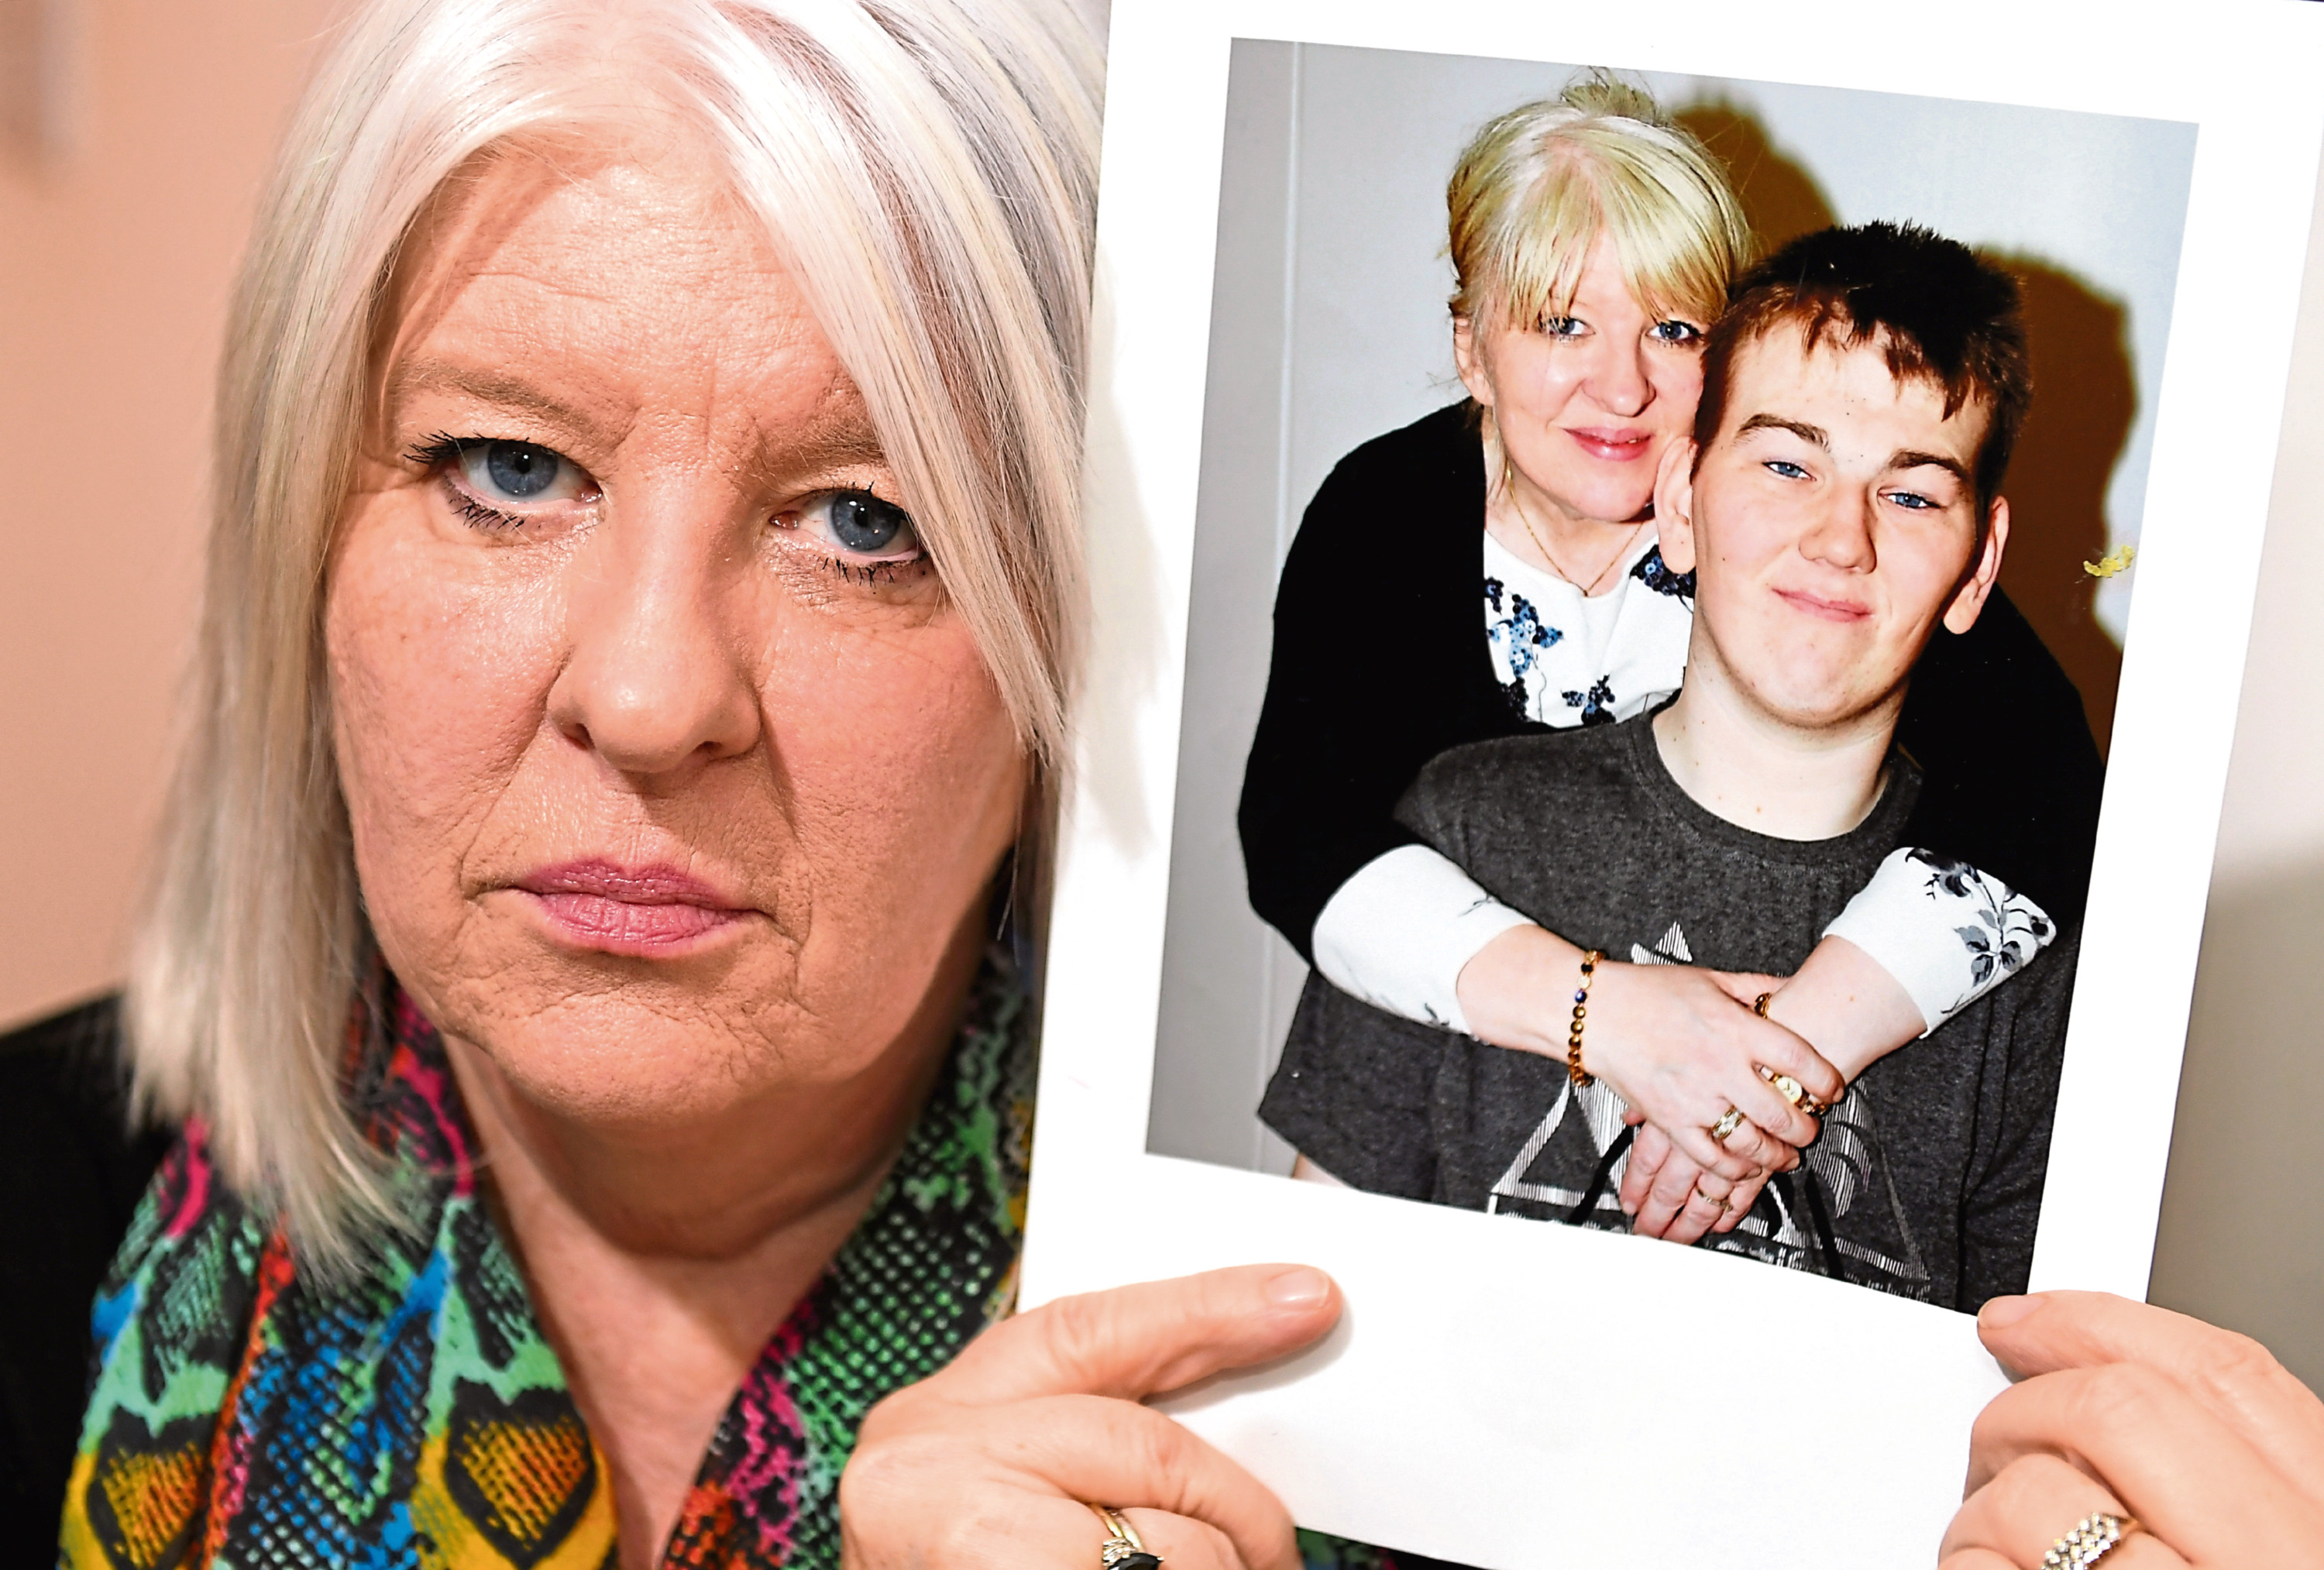 Tracey Gibbon, of Kemnay, and a picture of her with her son Kyle, who is in the state hospital at Carstairs